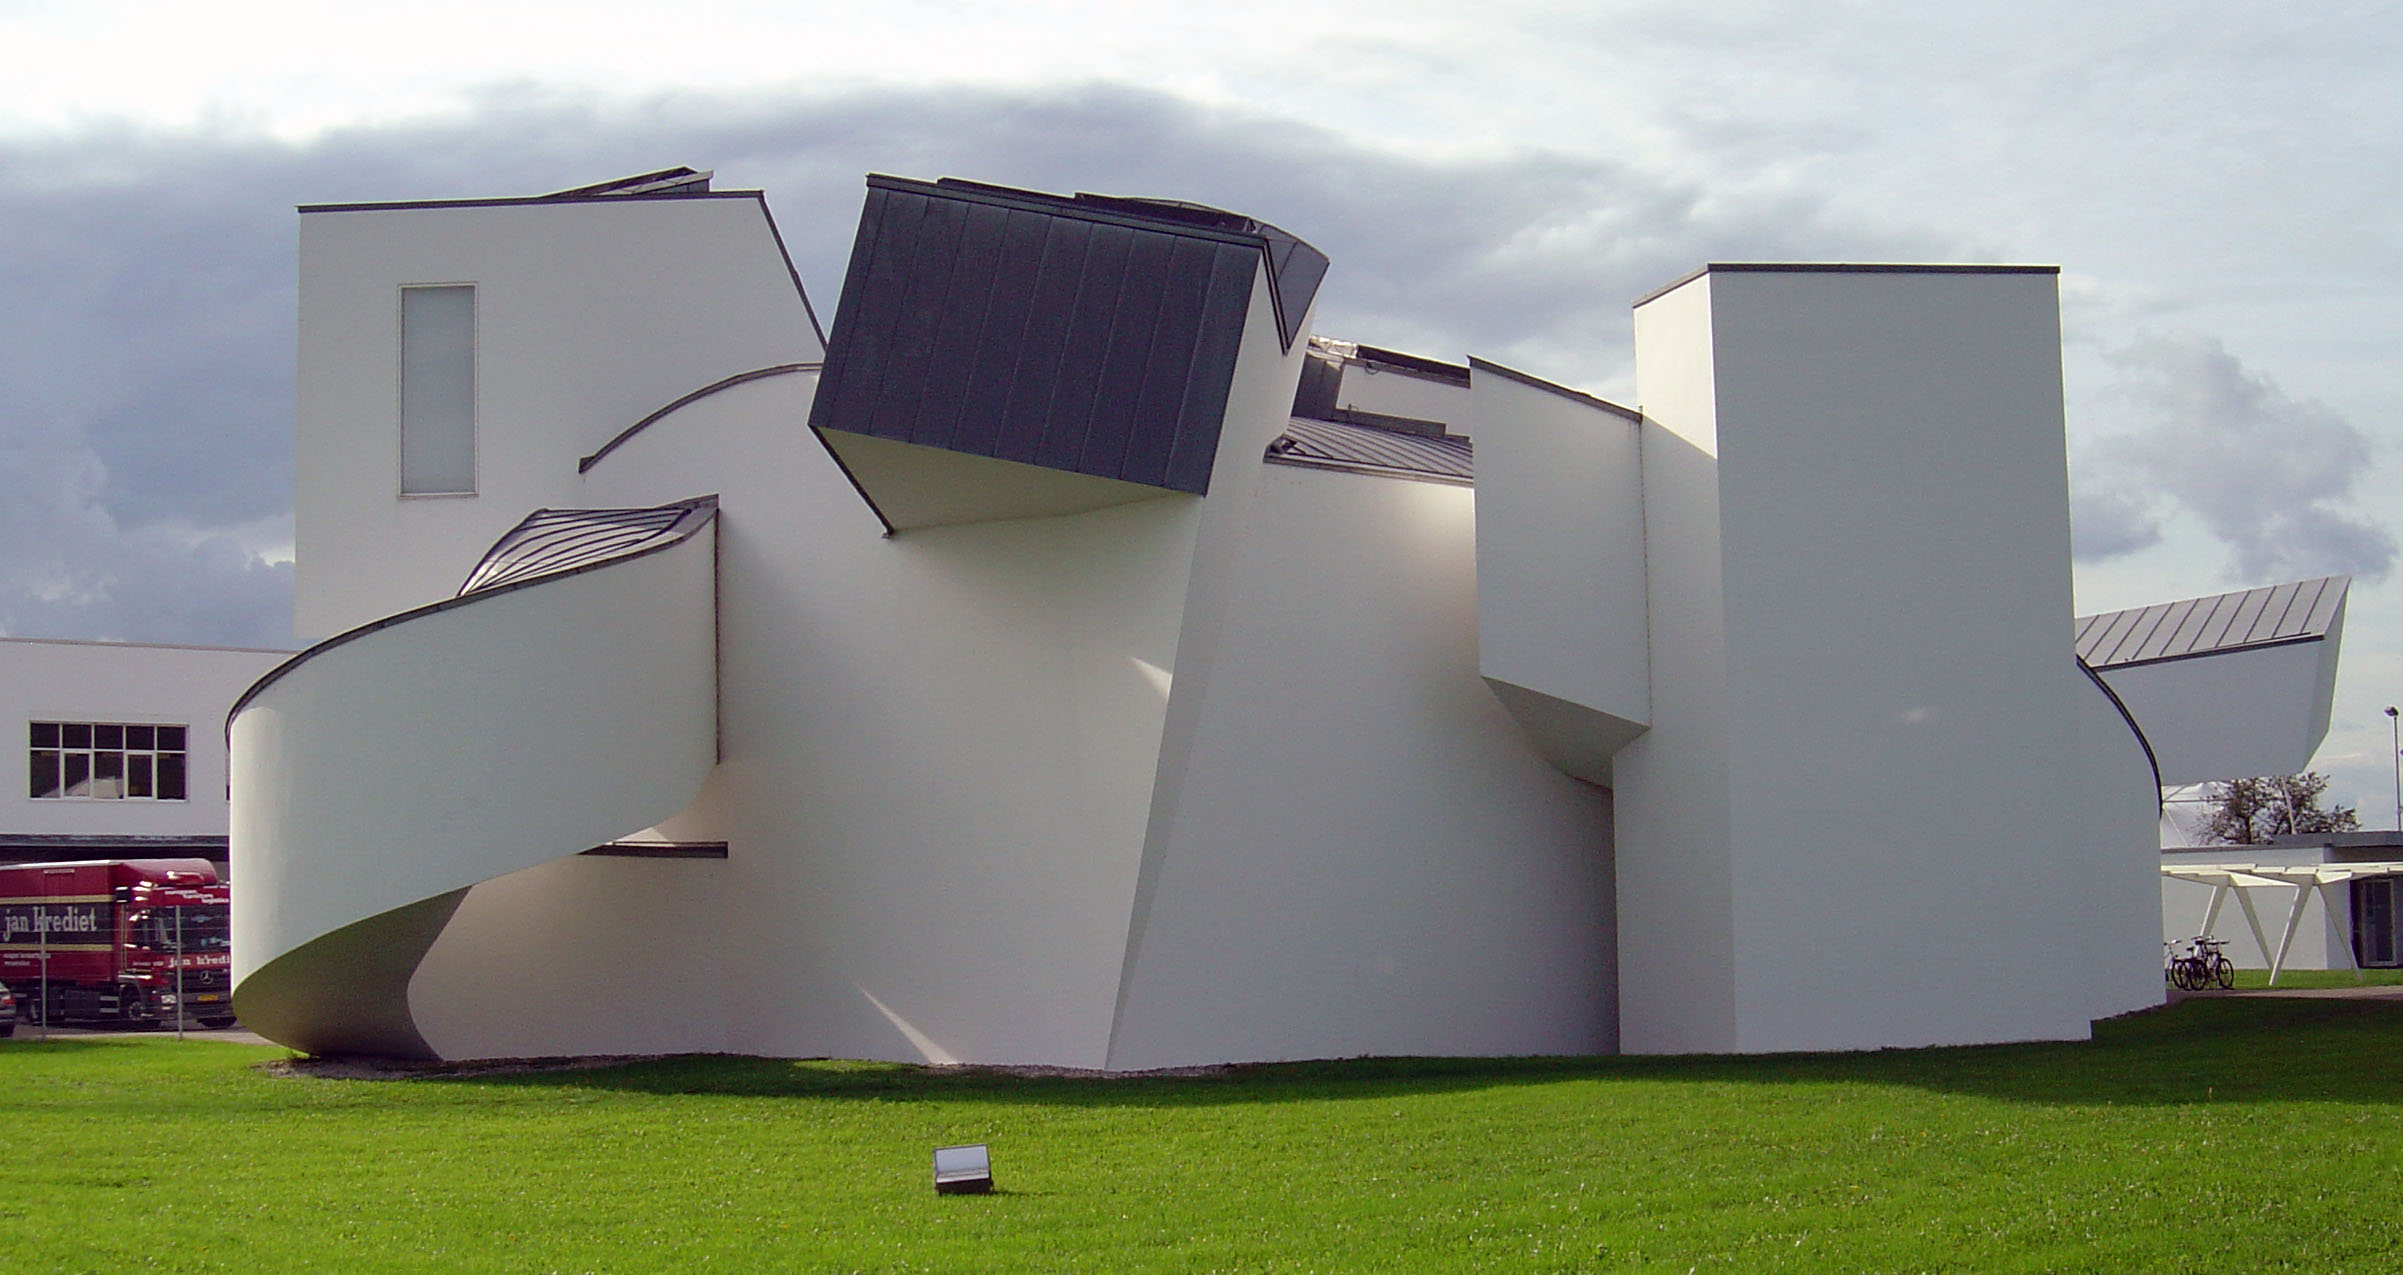 File:Vitra Design Museum, side view.jpg - Wikimedia Commons